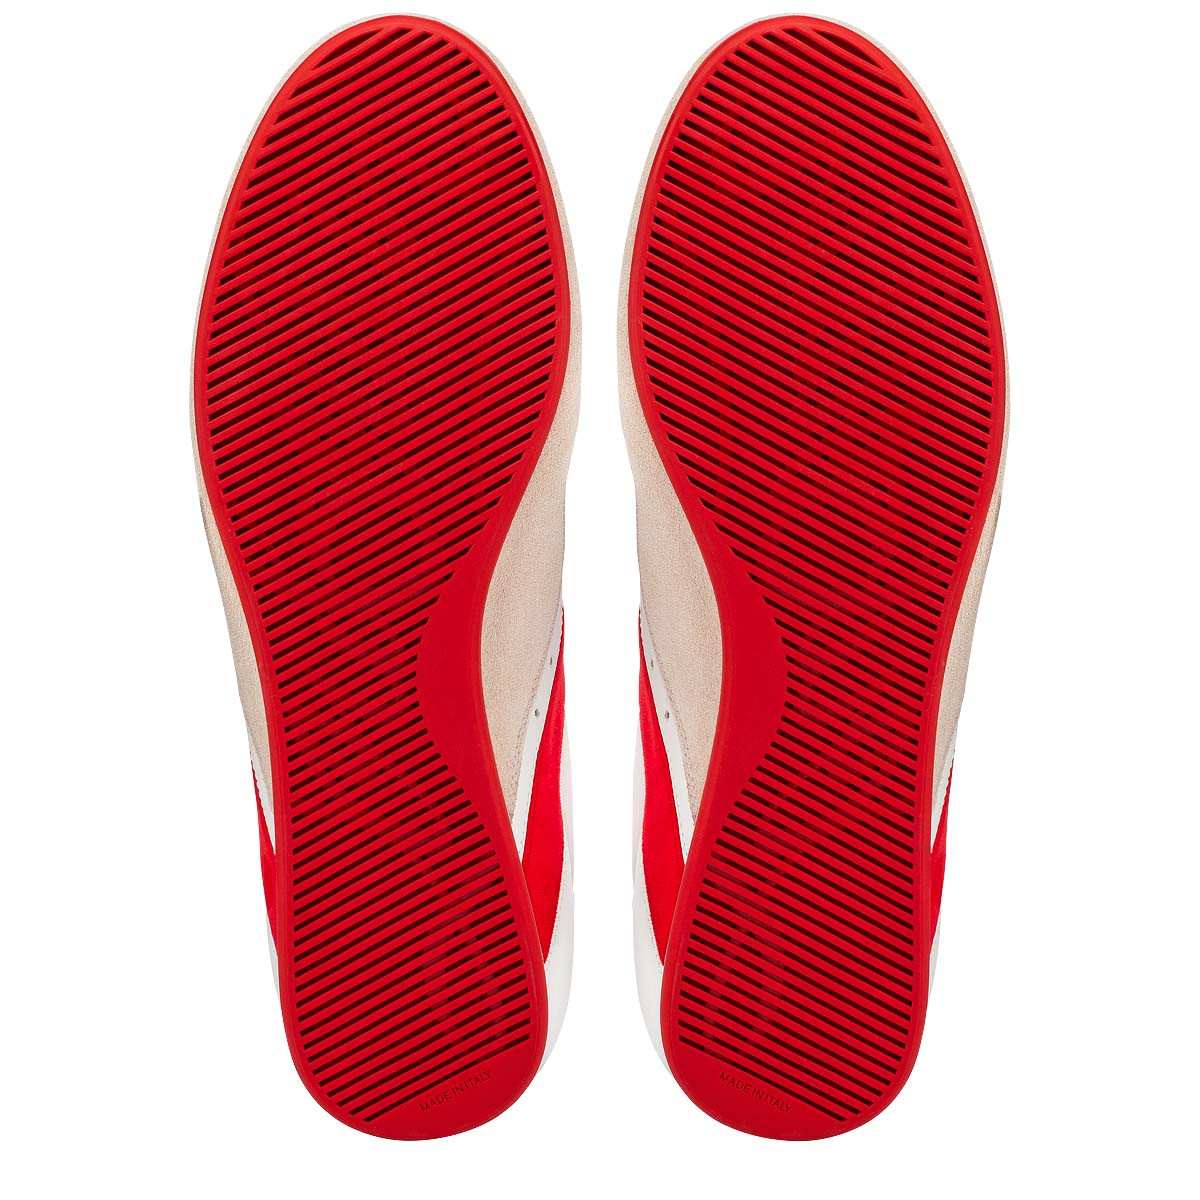 Shoes - My K Low Woman Flat - Christian Louboutin